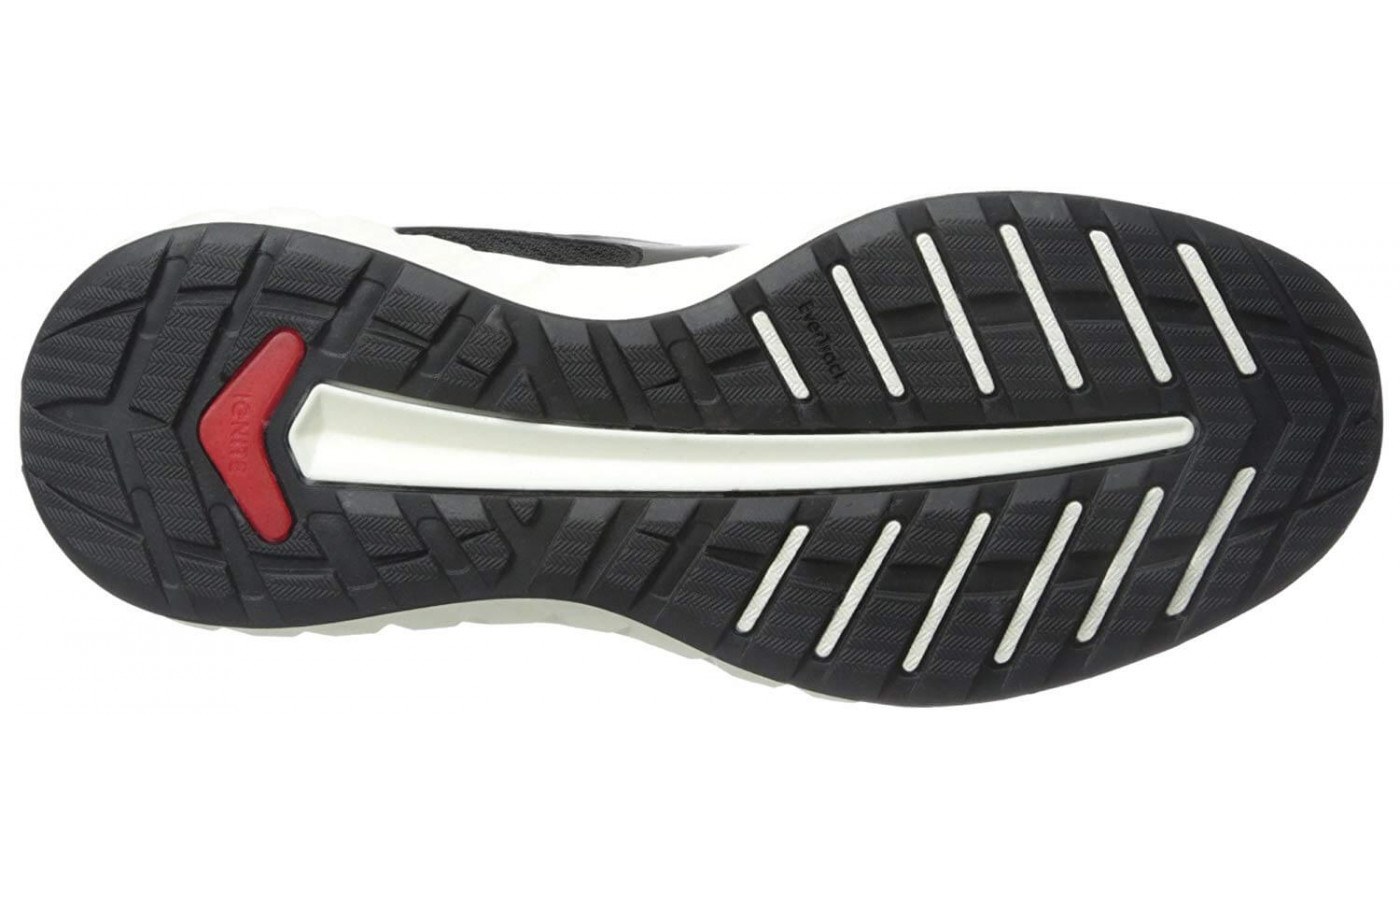 The transition line along the outsole provides a smooth heel to toe transition.